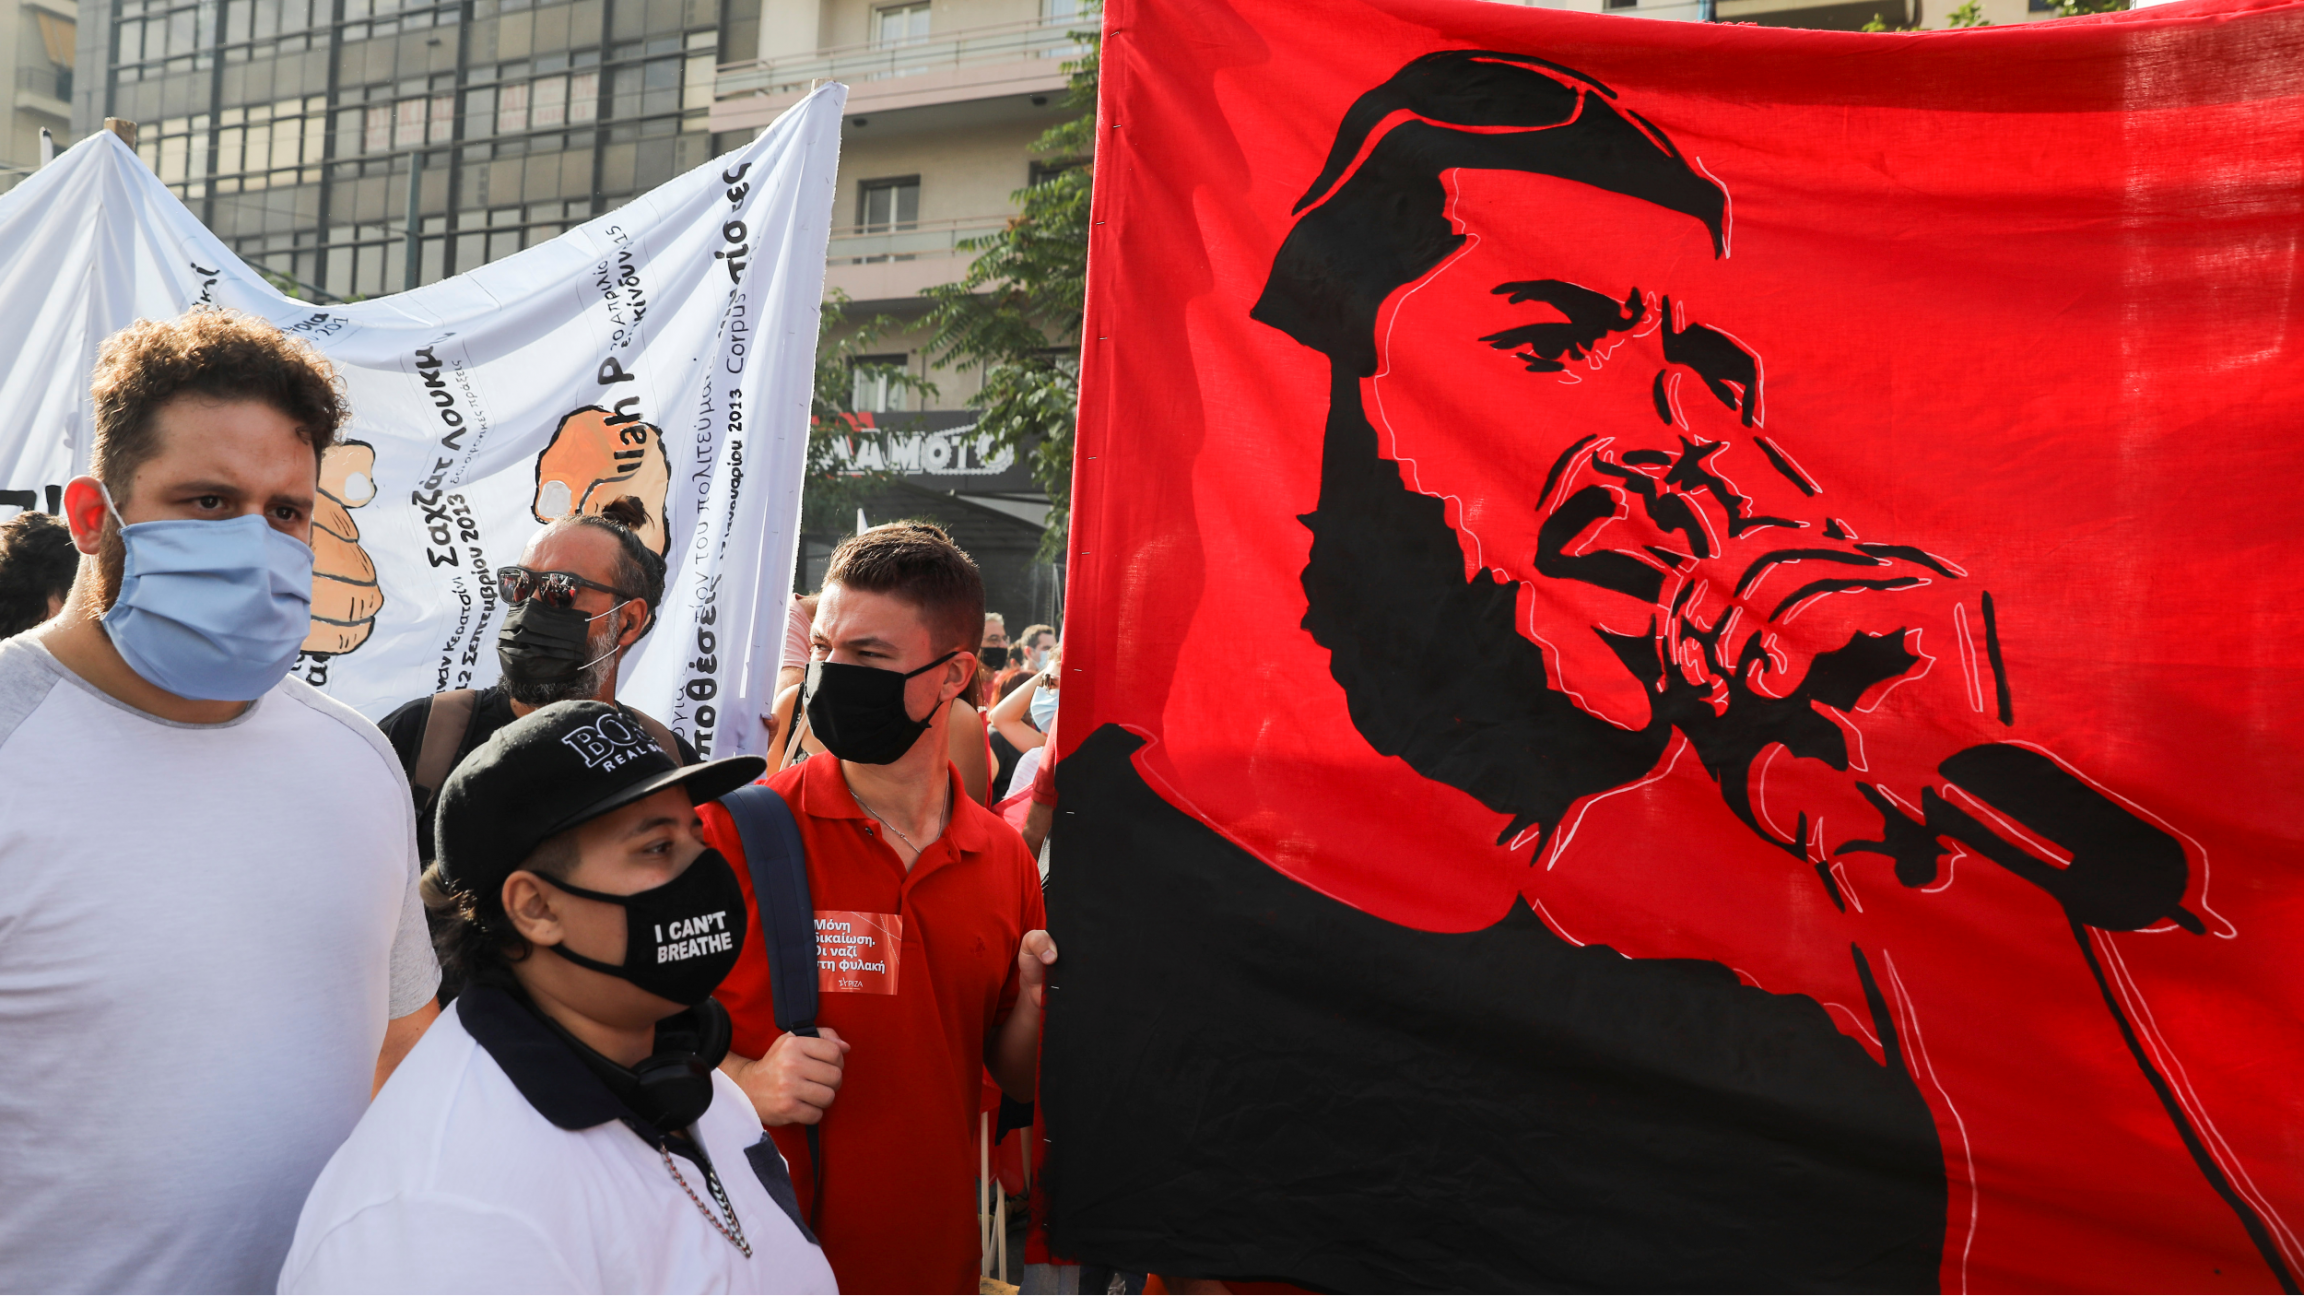 A bright red banner depicting anti-racist Greek rapper Pavlos Fyssas is seen, as demonstrators protest at the close of the trial for leaders and members of the far-right Golden Dawn, in Athens, Greece, Oct. 7, 2020.